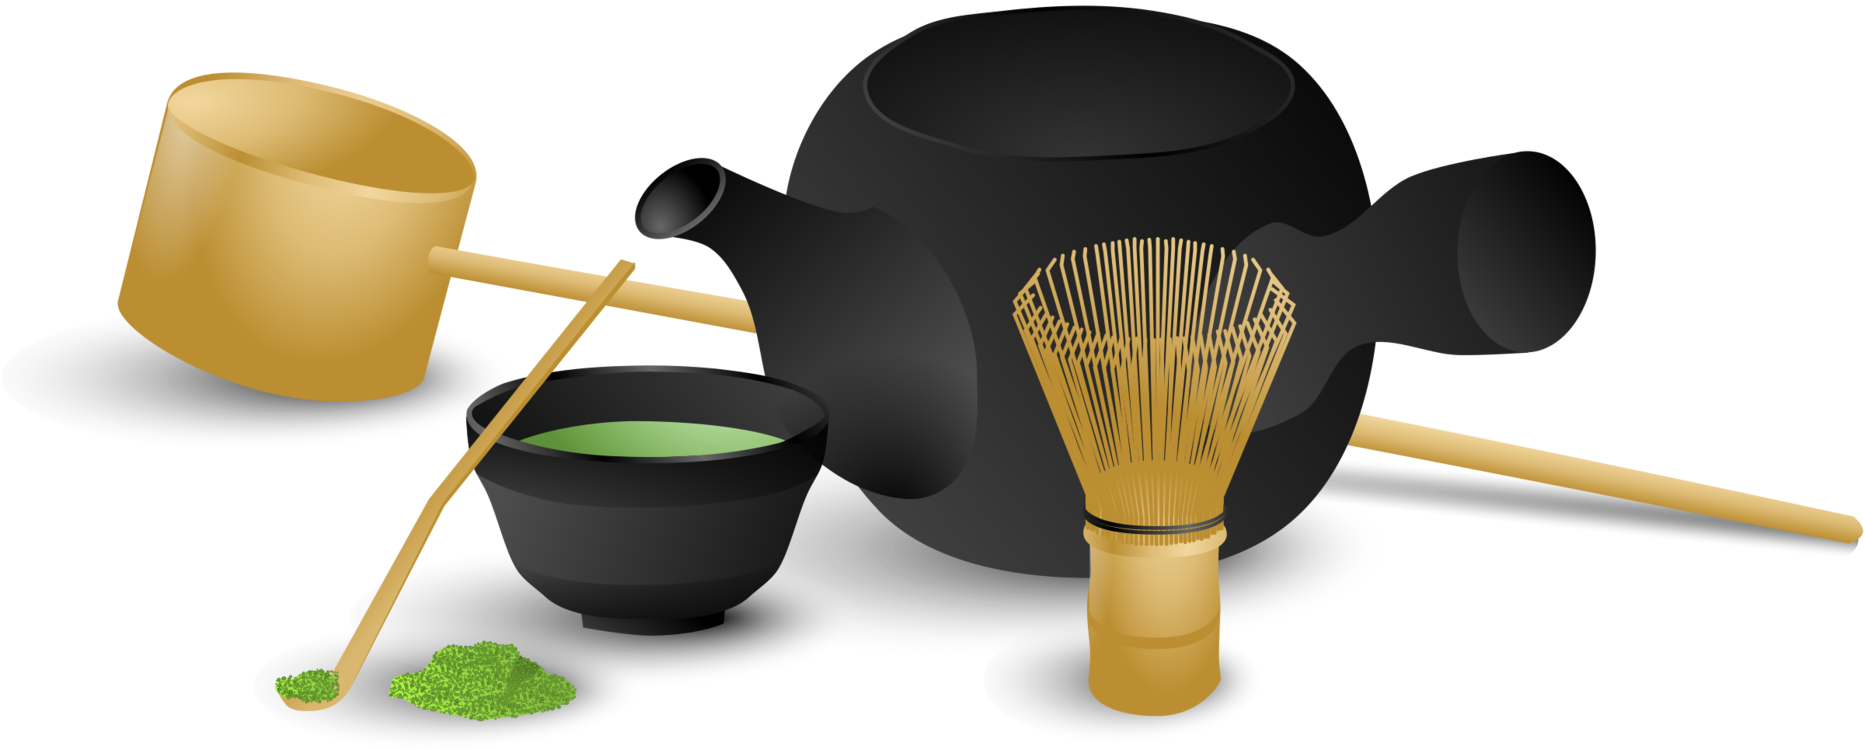 Tableware,Japanese Cuisine,Green Tea